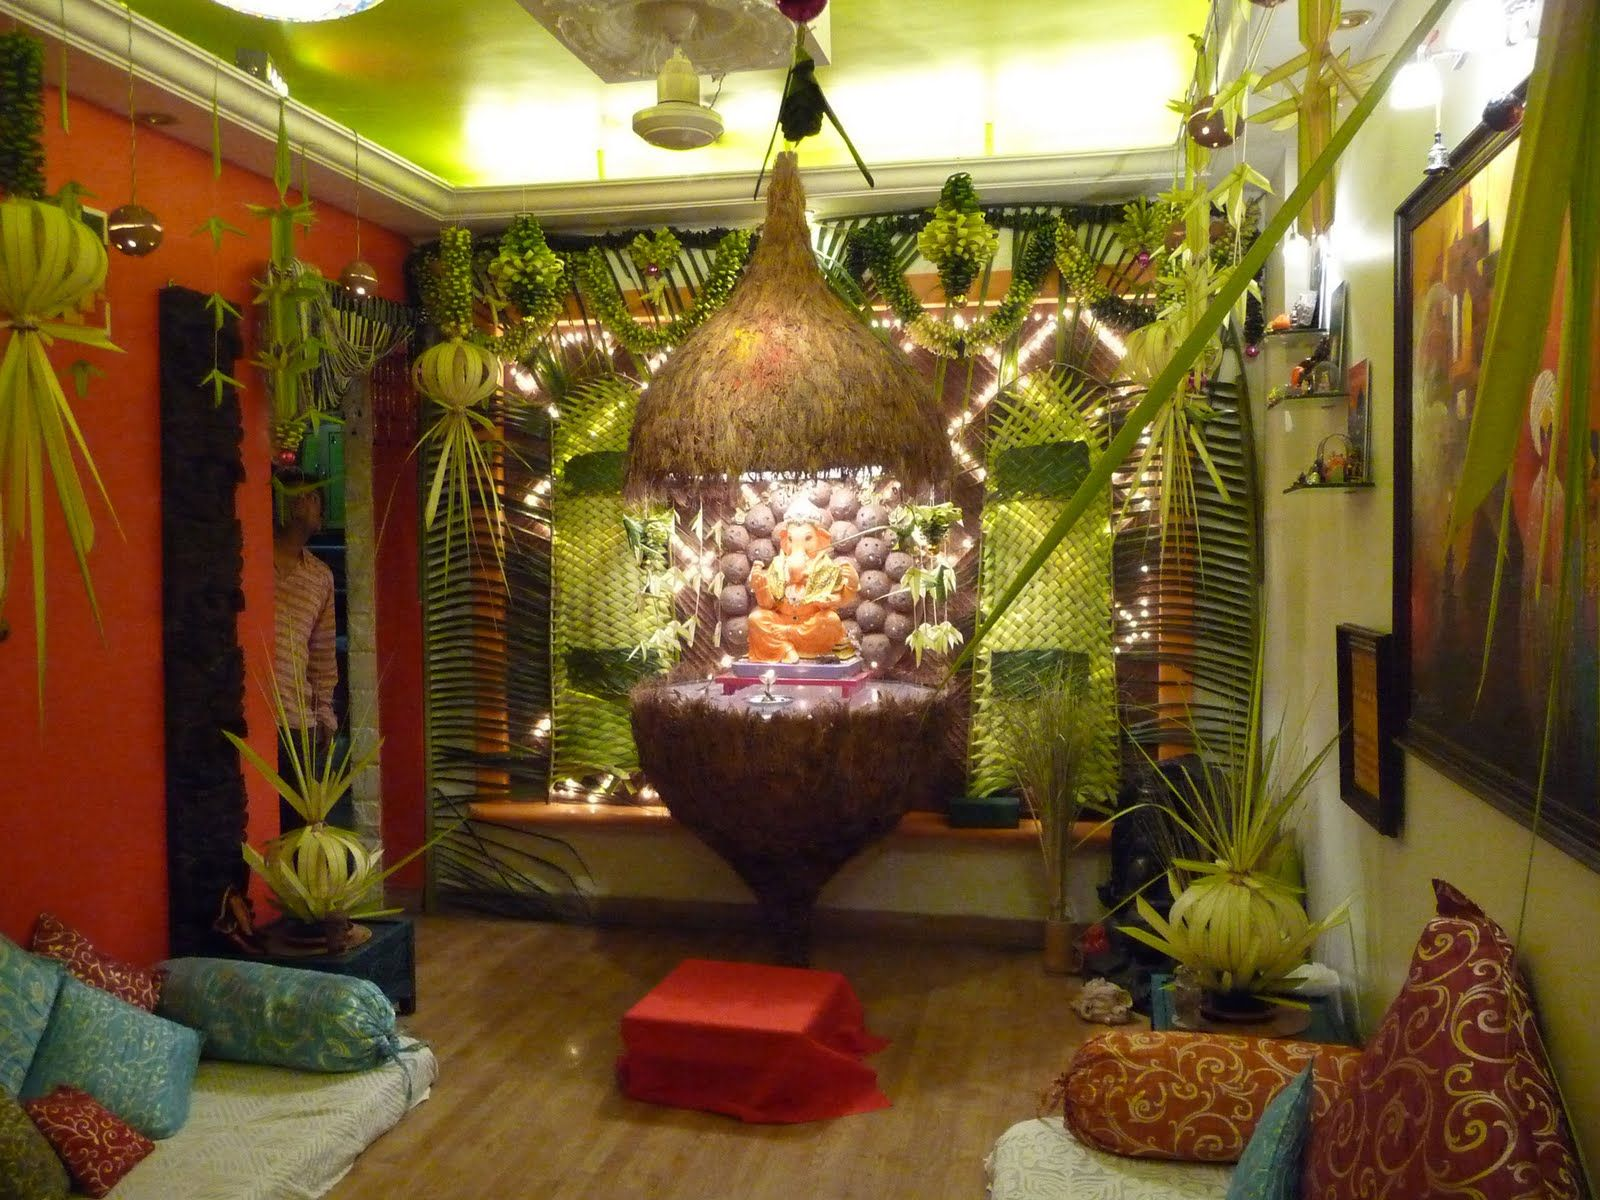 Ganesh Chaturthi Decoration Ideas For Home Decoration For